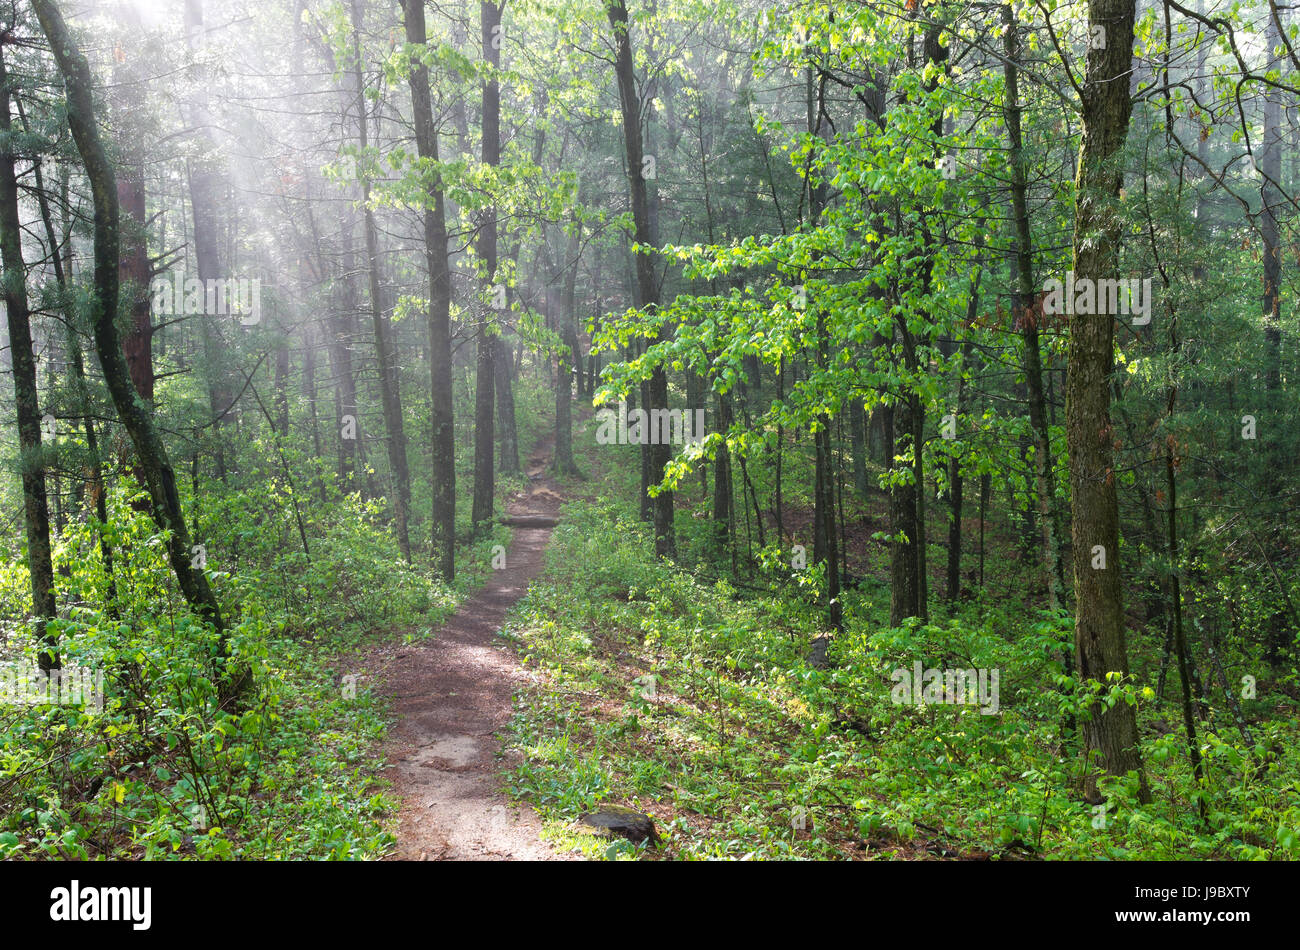 Misty Green Forest Nature River Beautiful 1ziw: Lush Green Misty Forest Trail In Castle Mound Pine Forest